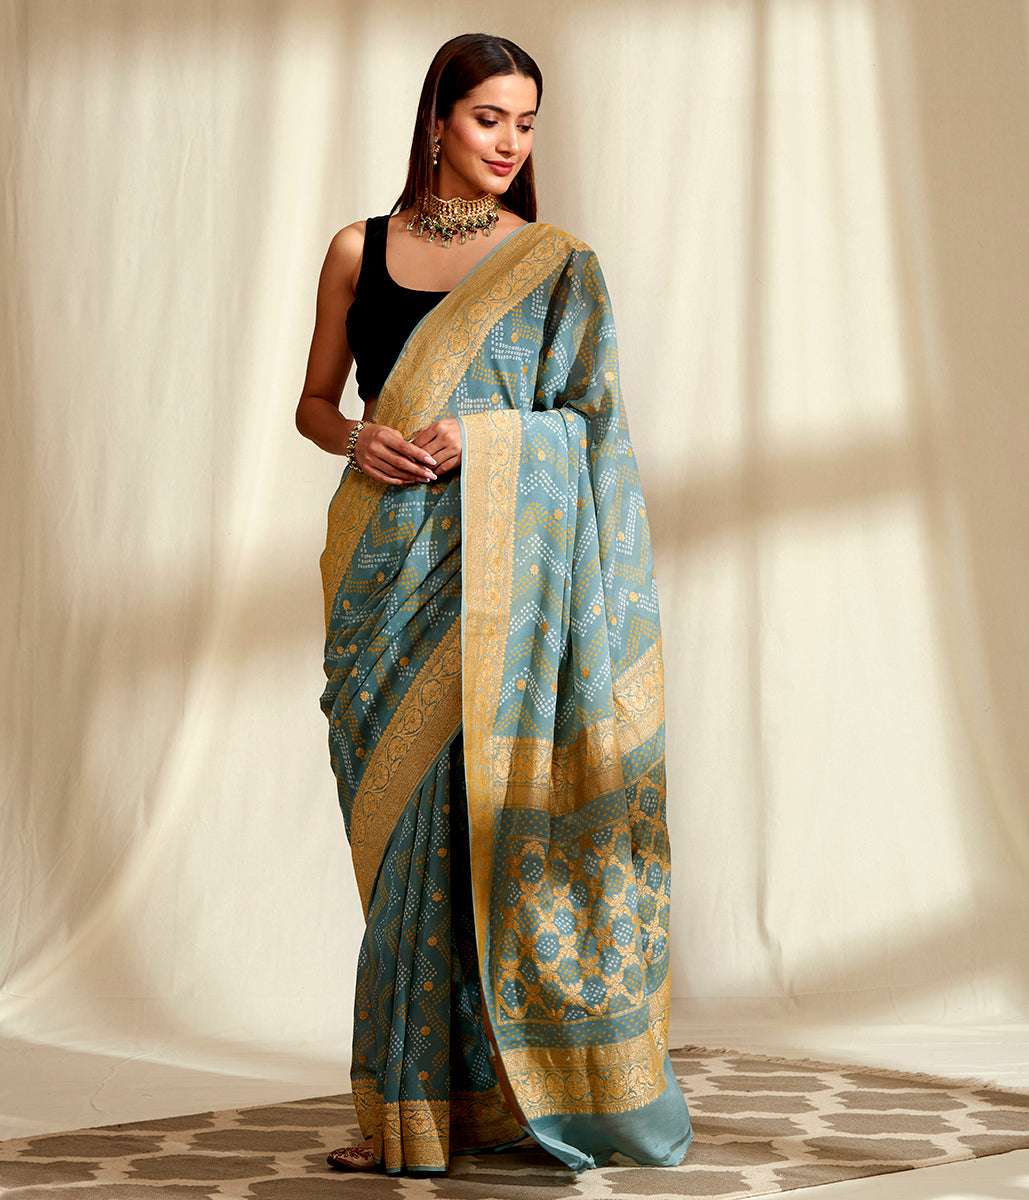 Handwoven Banarasi Bandhej Saree in Grey with Gold Zari Kadhwa Weave